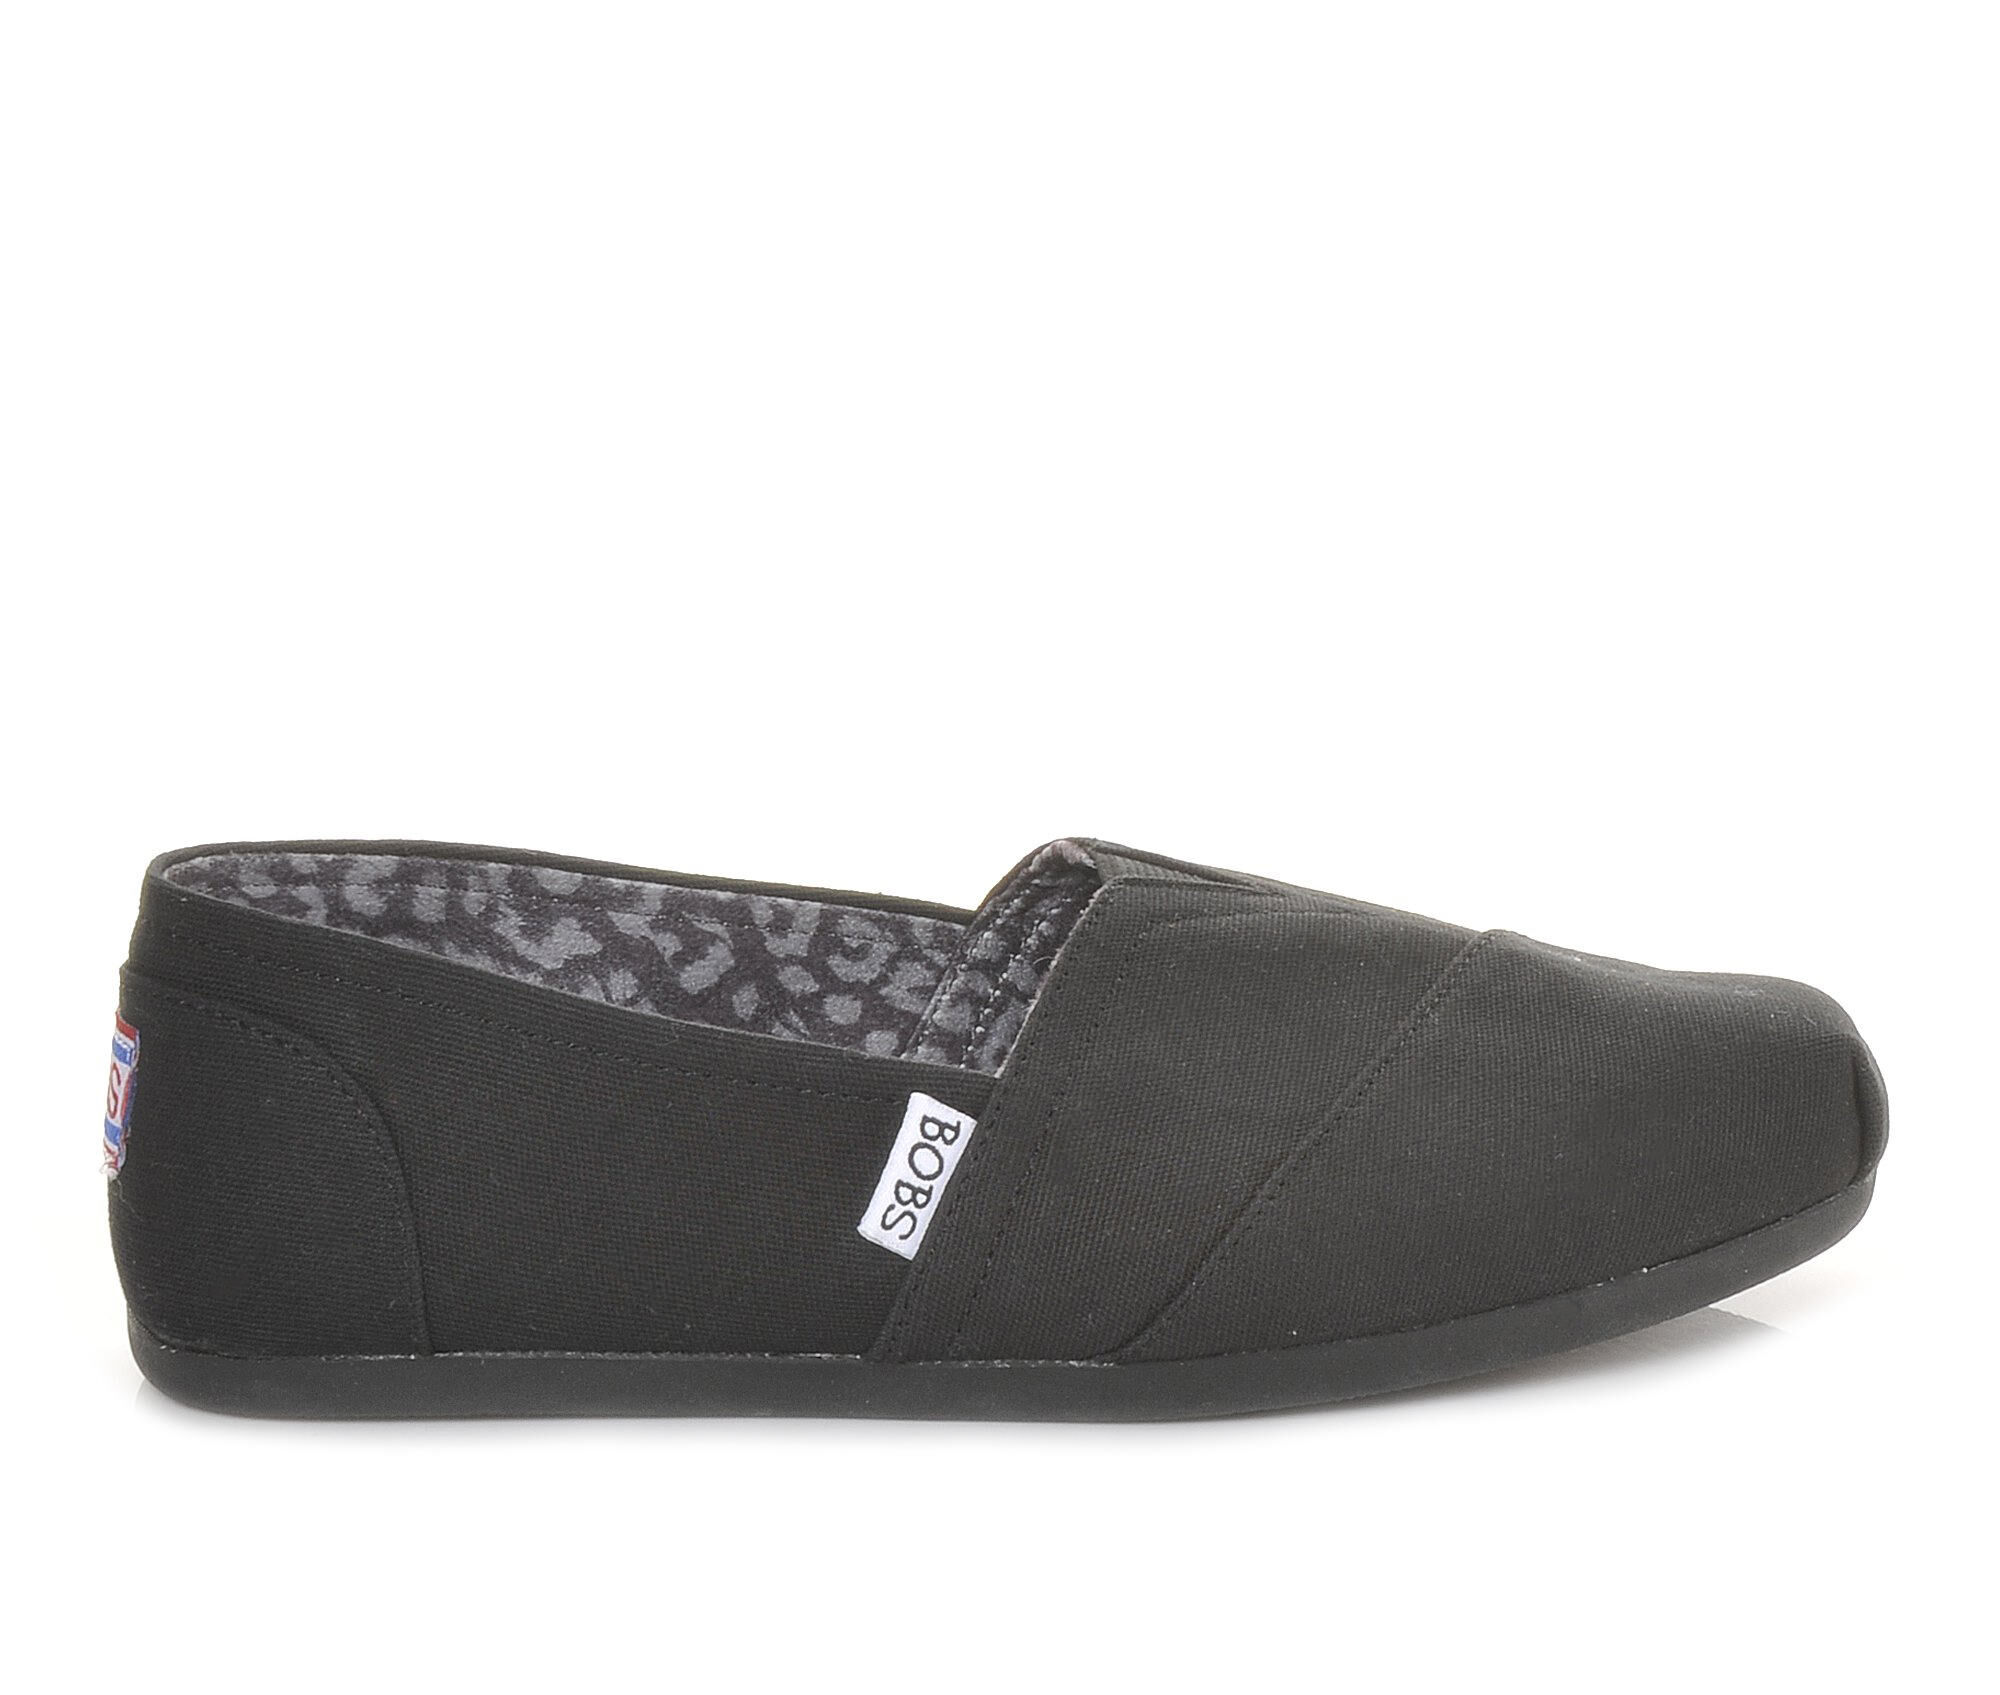 bobs shoes for women price